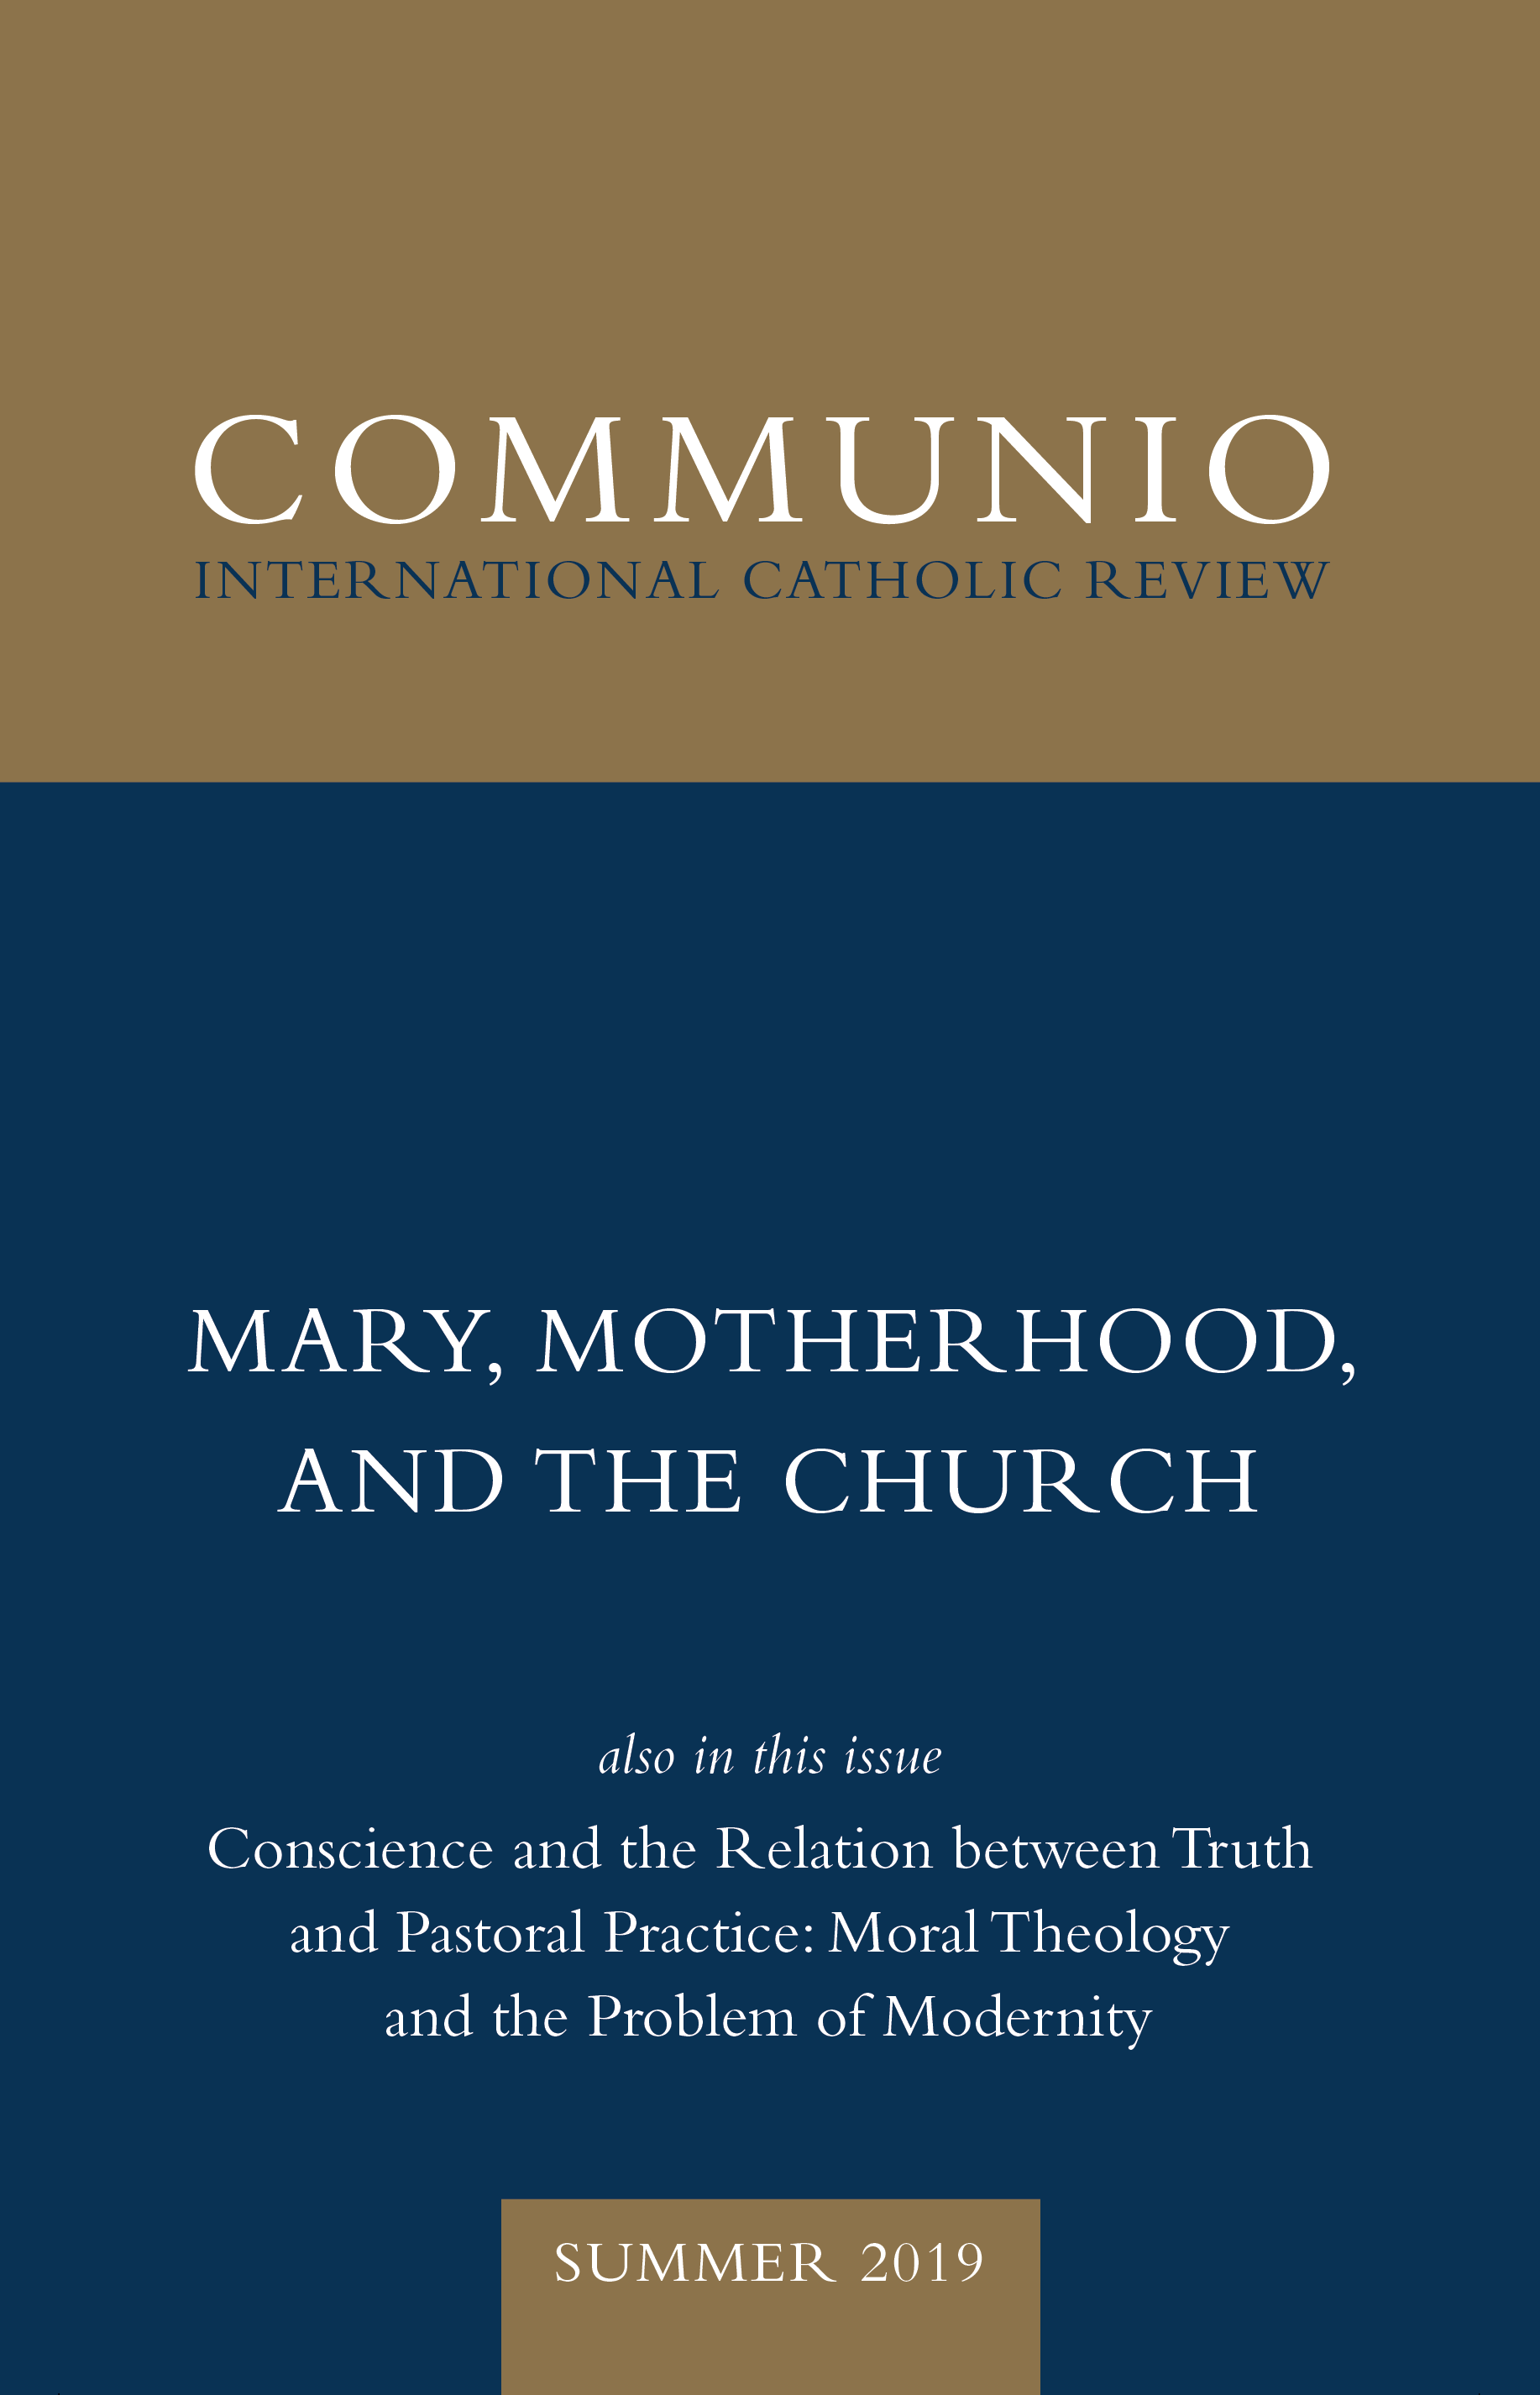 Communio - Summer 2019 - Mary, Motherhood, and the Church